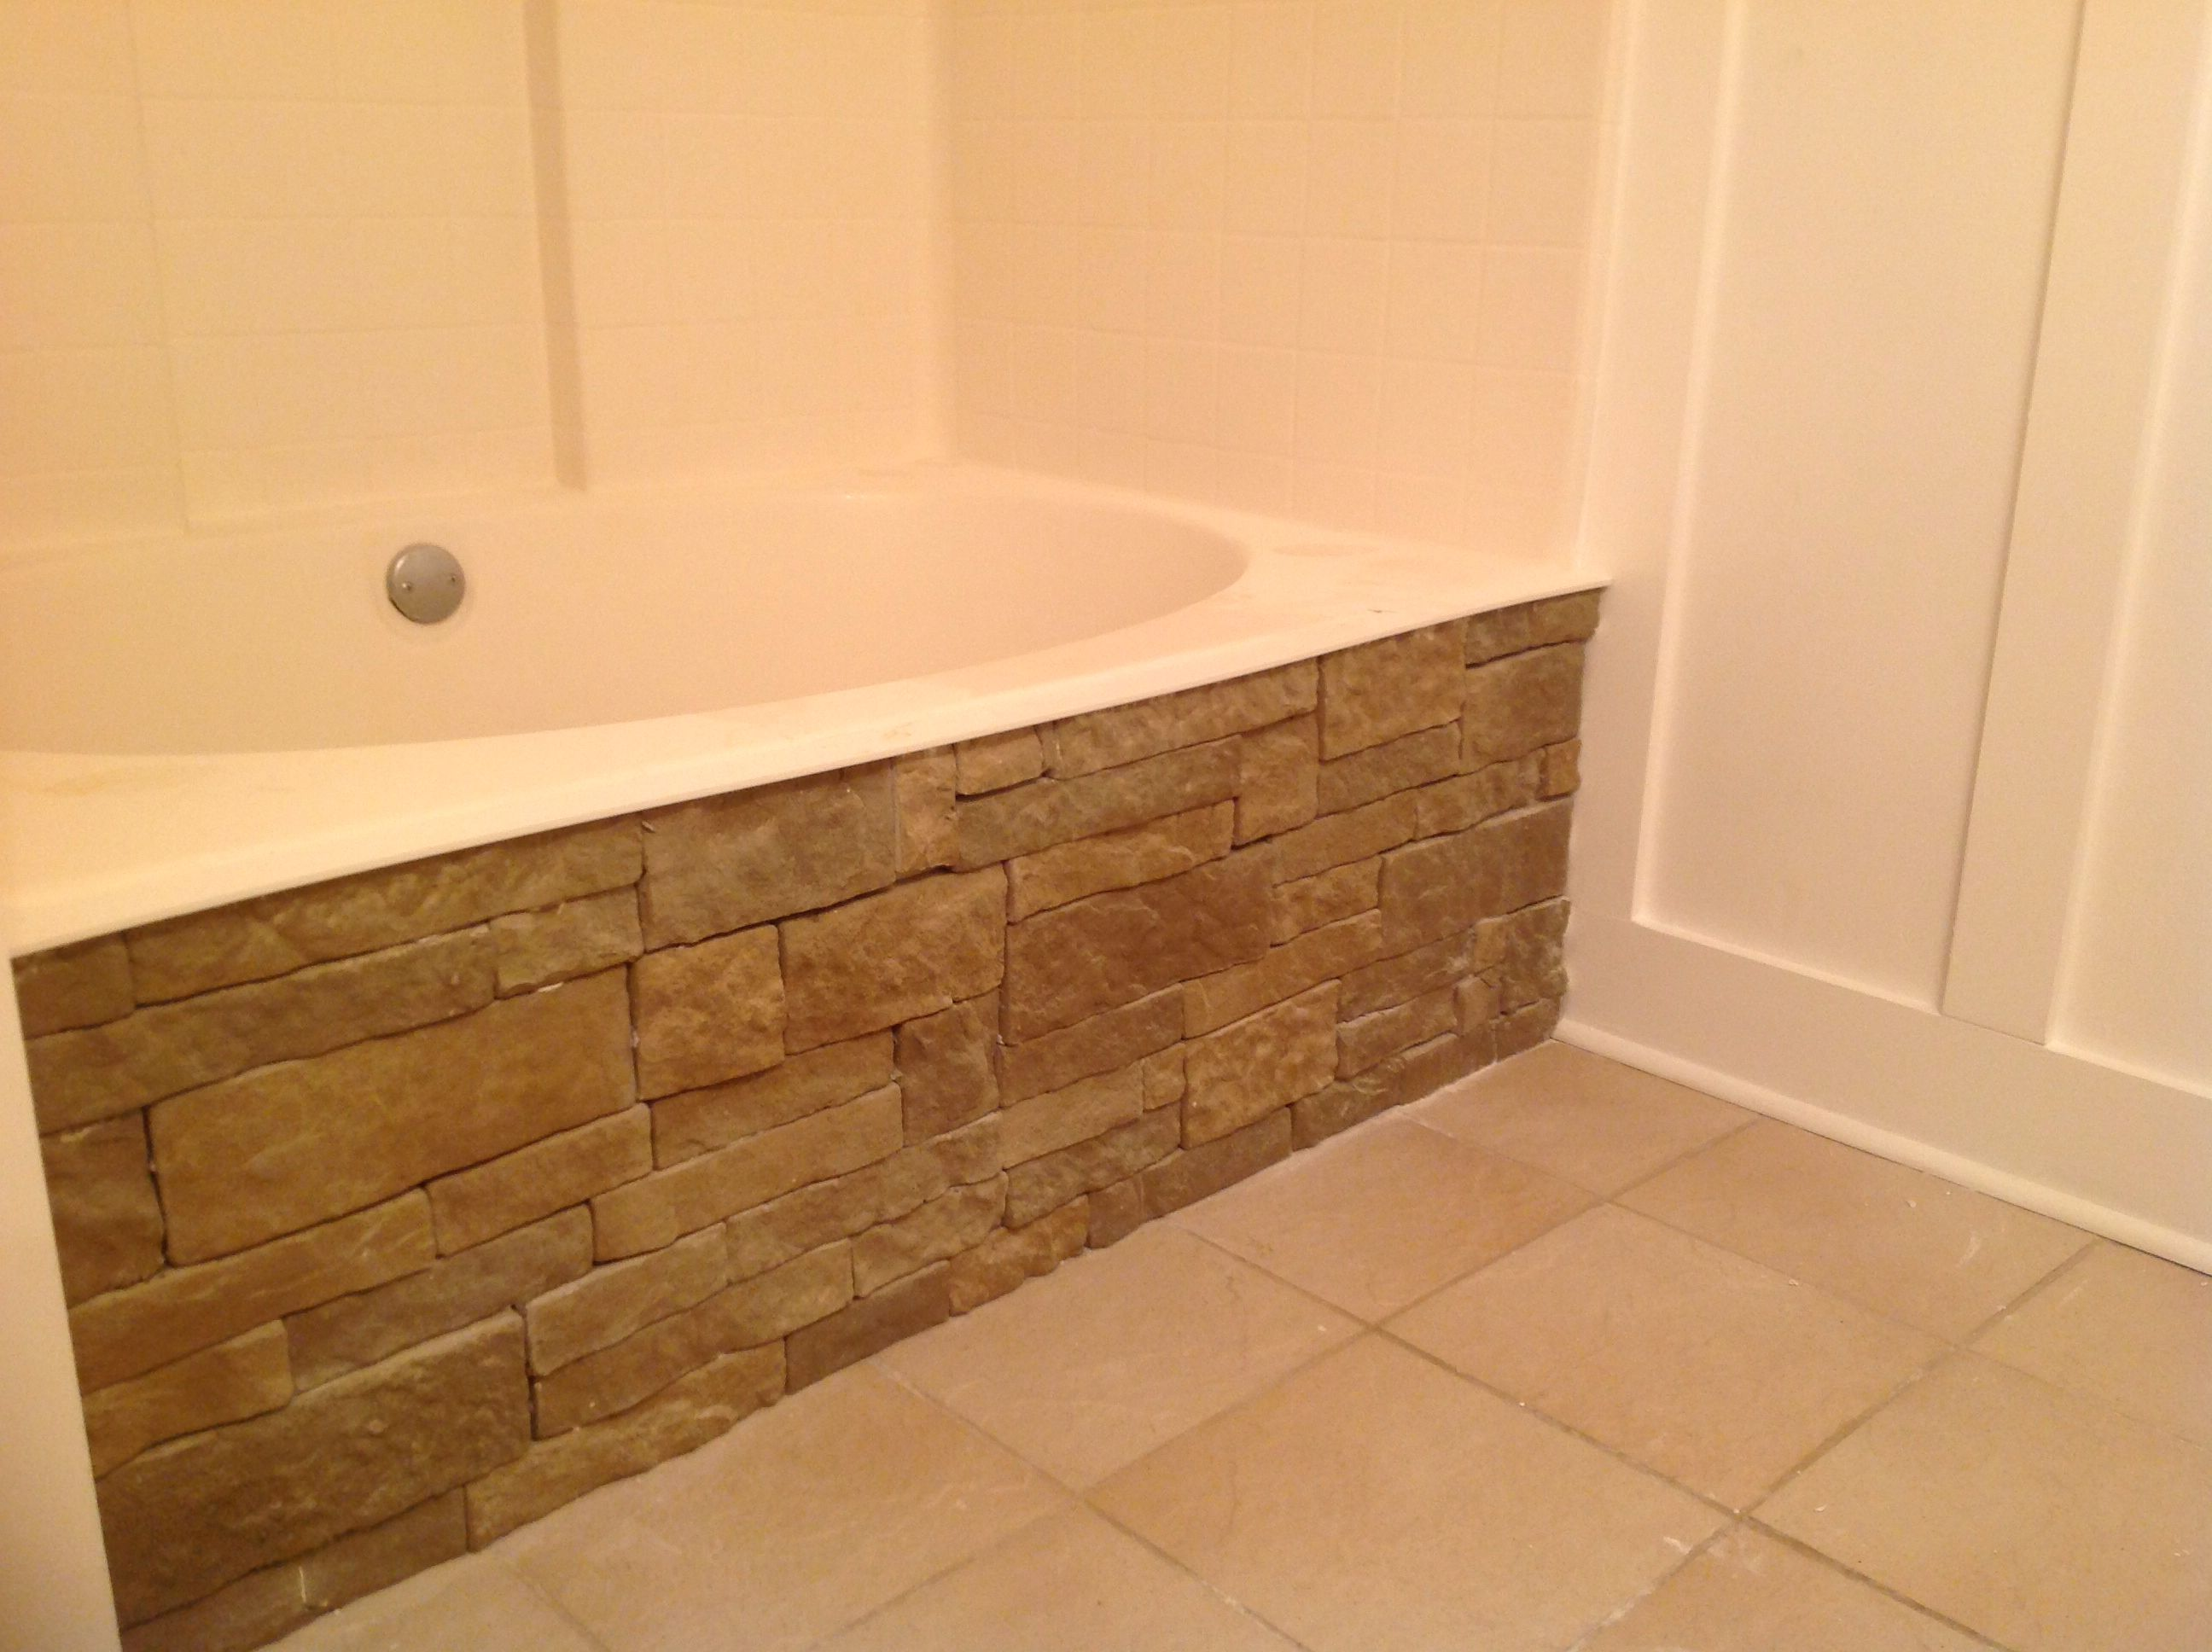 Air stone (With images) | Home renovation, Bathrooms ...